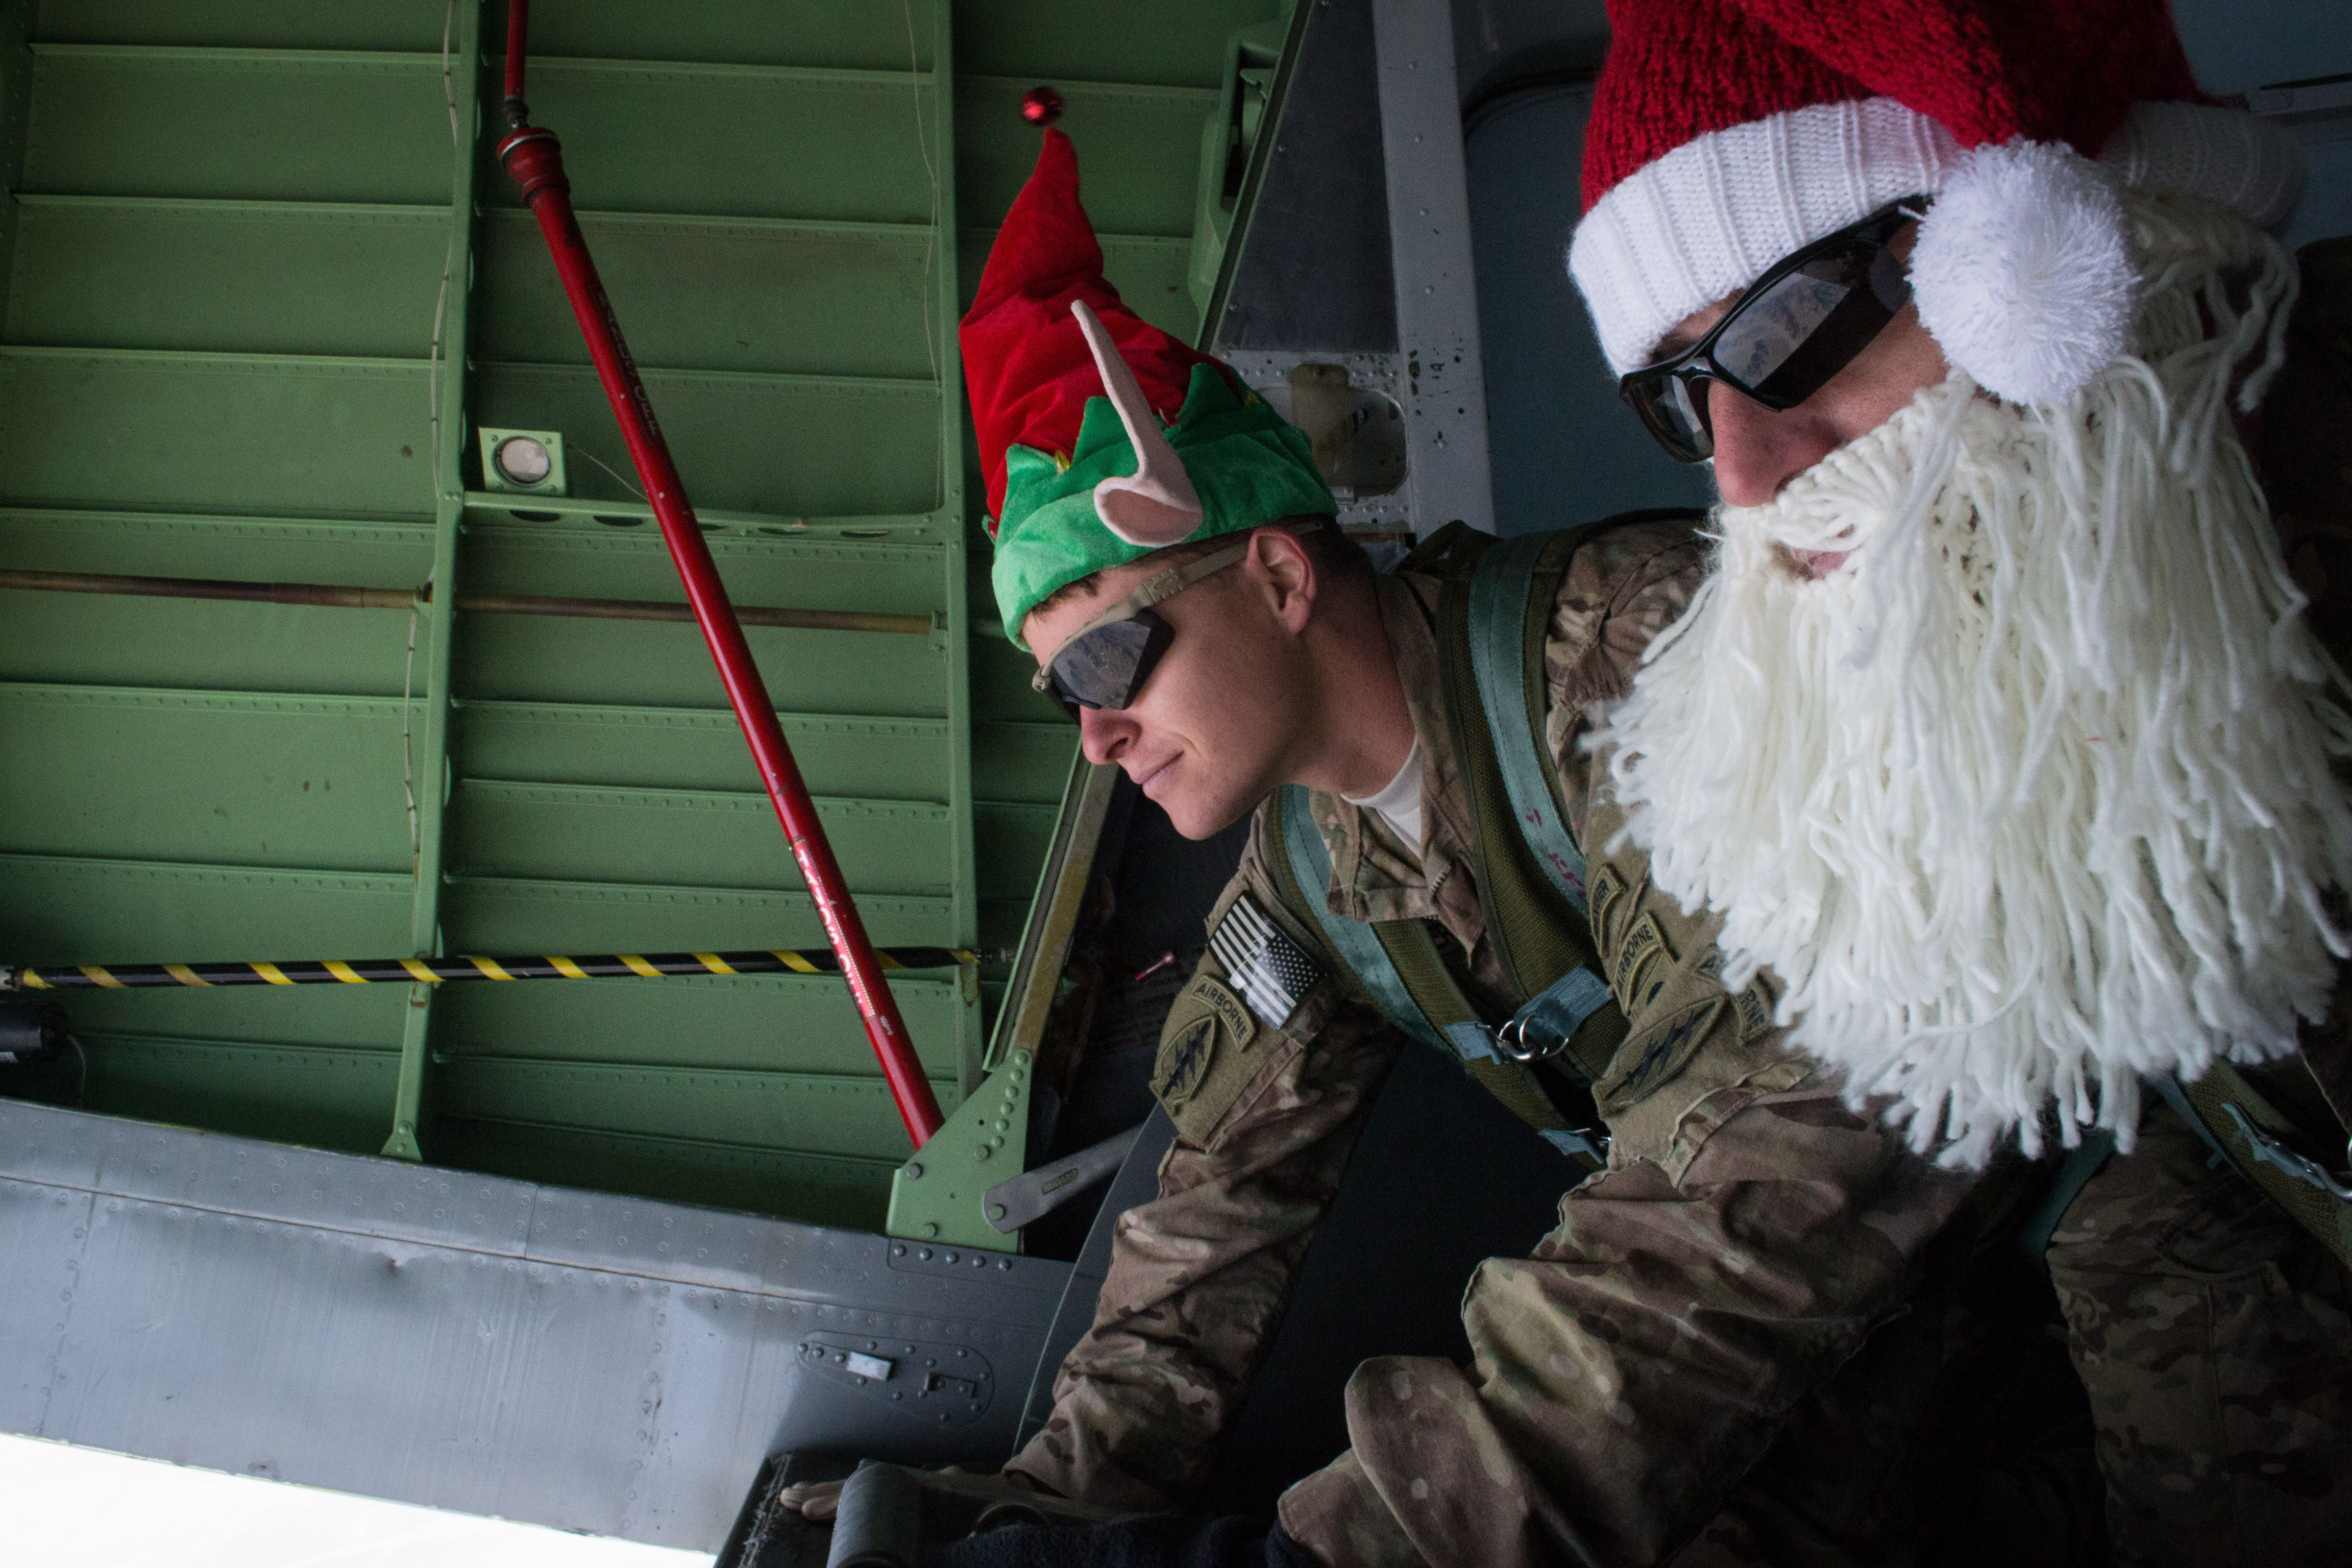 Support Our United States Military During Christmas